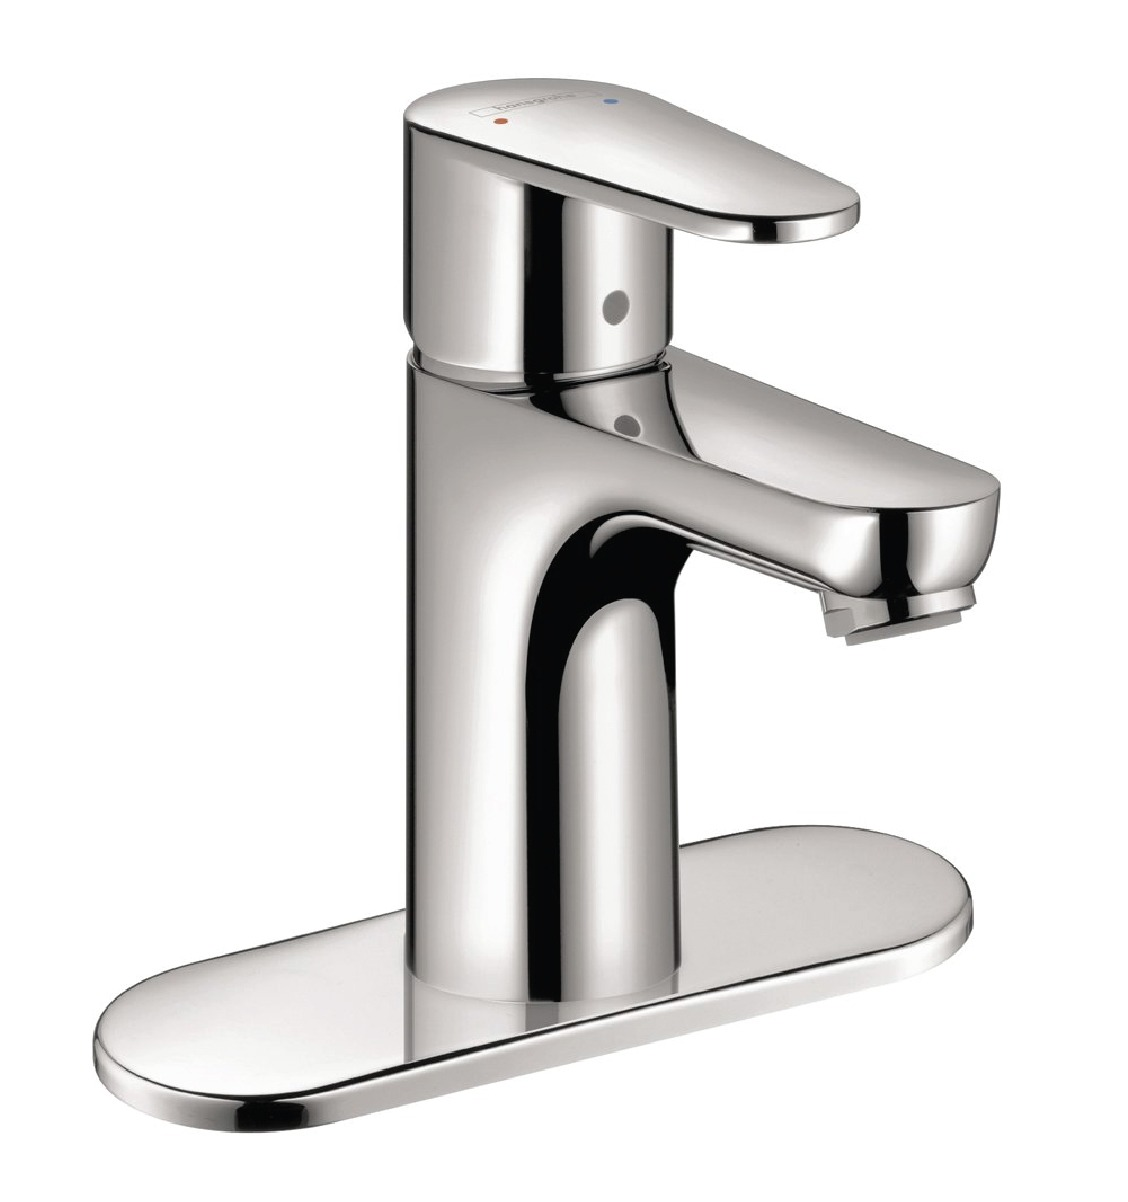 faucet. One Large Sink With Two Faucets For Bathroom Faucet Trough Style